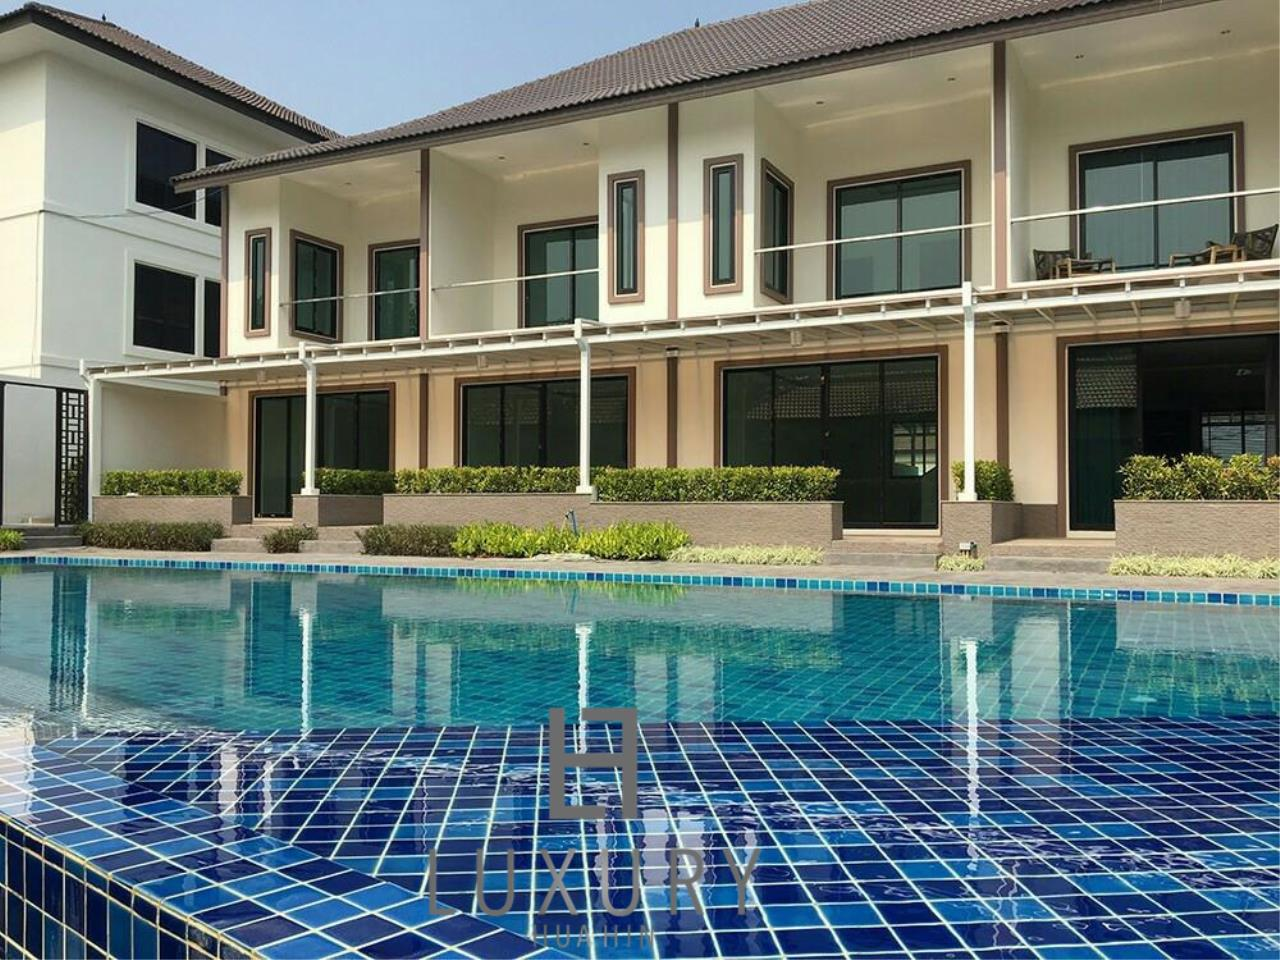 Luxury Hua Hin Property Agency's New Development - New Townhouses close to Hua Hin town centre 2